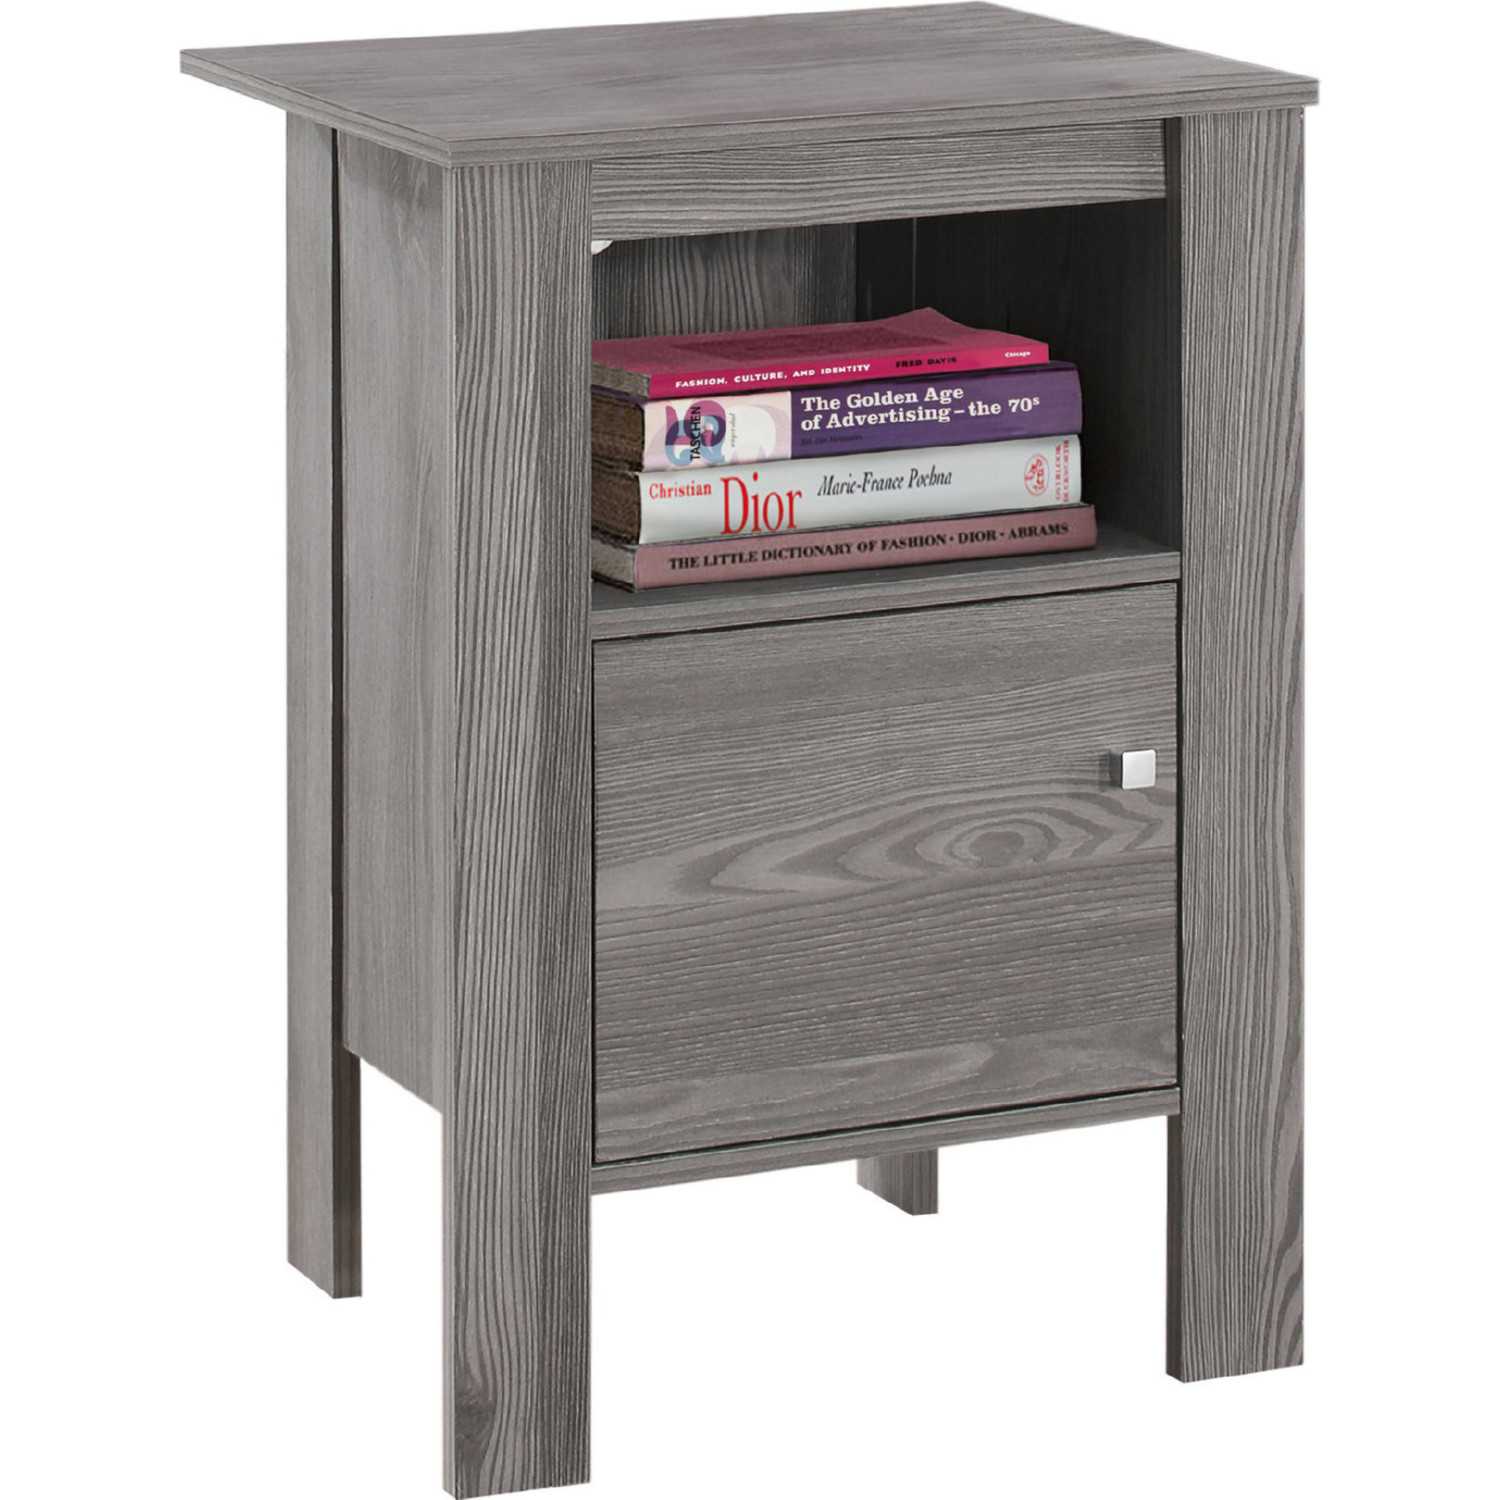 monarch specialties accent table night stand storage grey large corner outdoor furniture couch clear marble top coffee small decorative chest drawers chaise lounge elm flooring